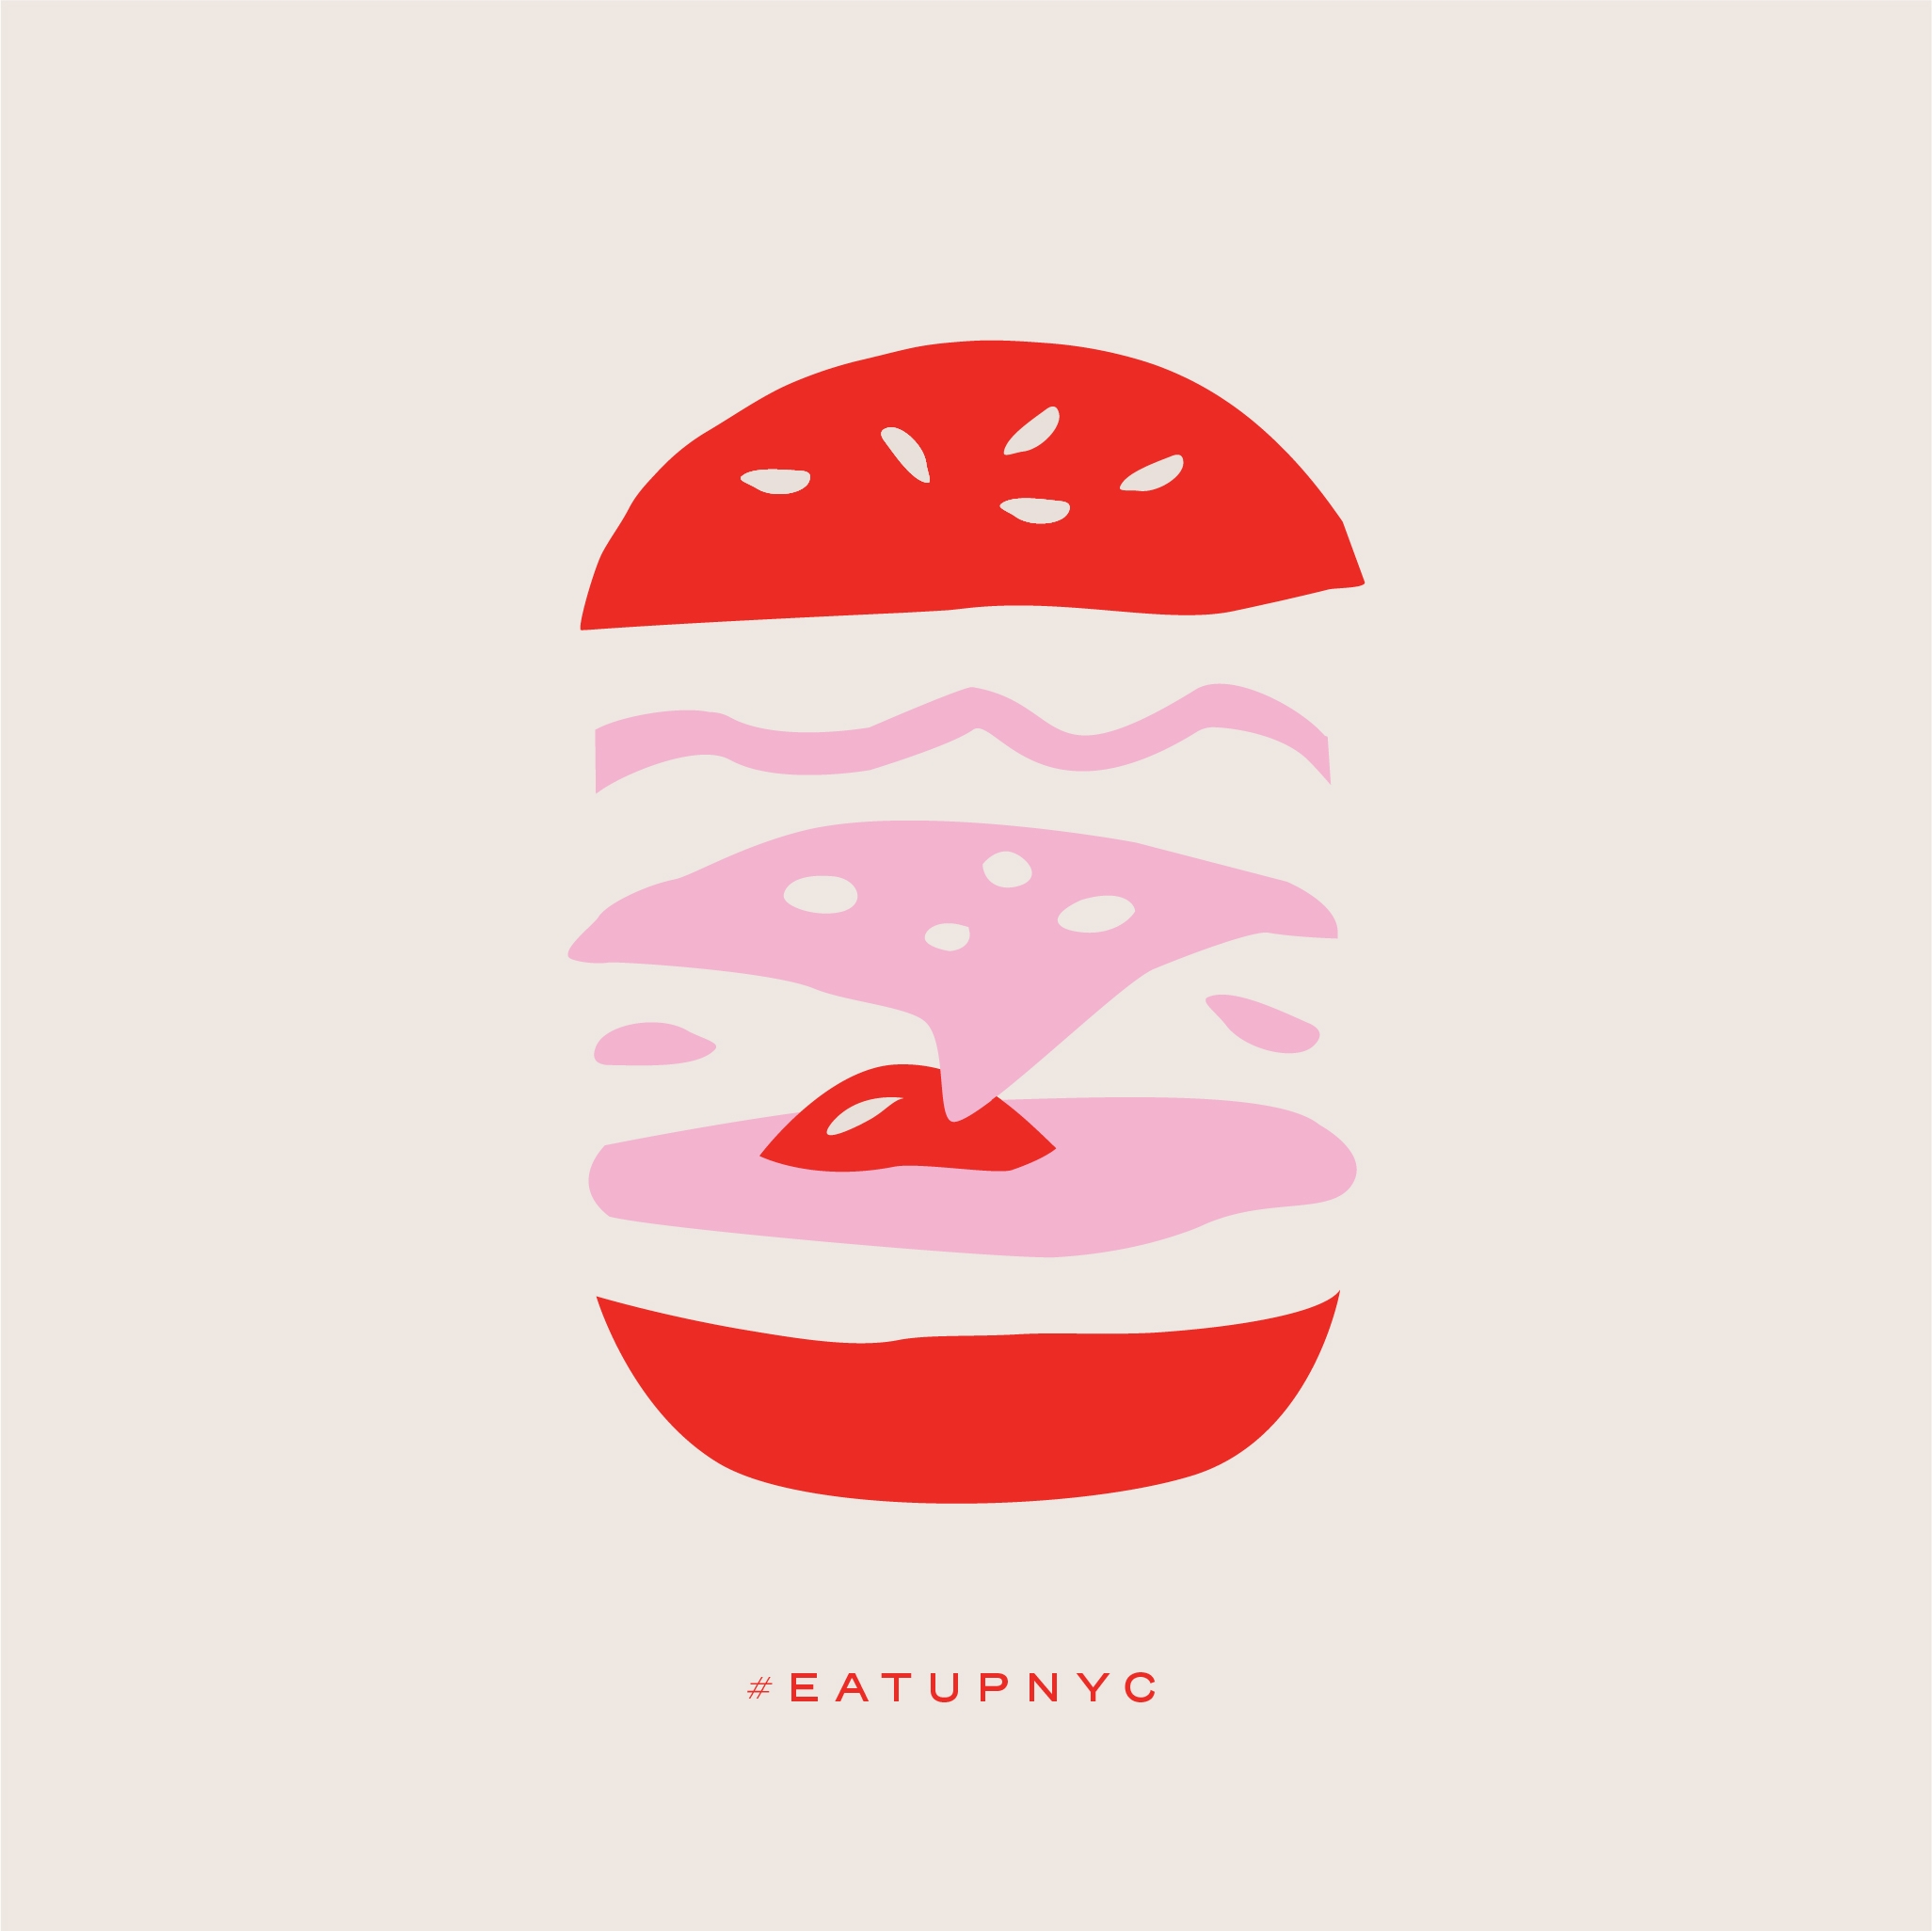 a burger graphic